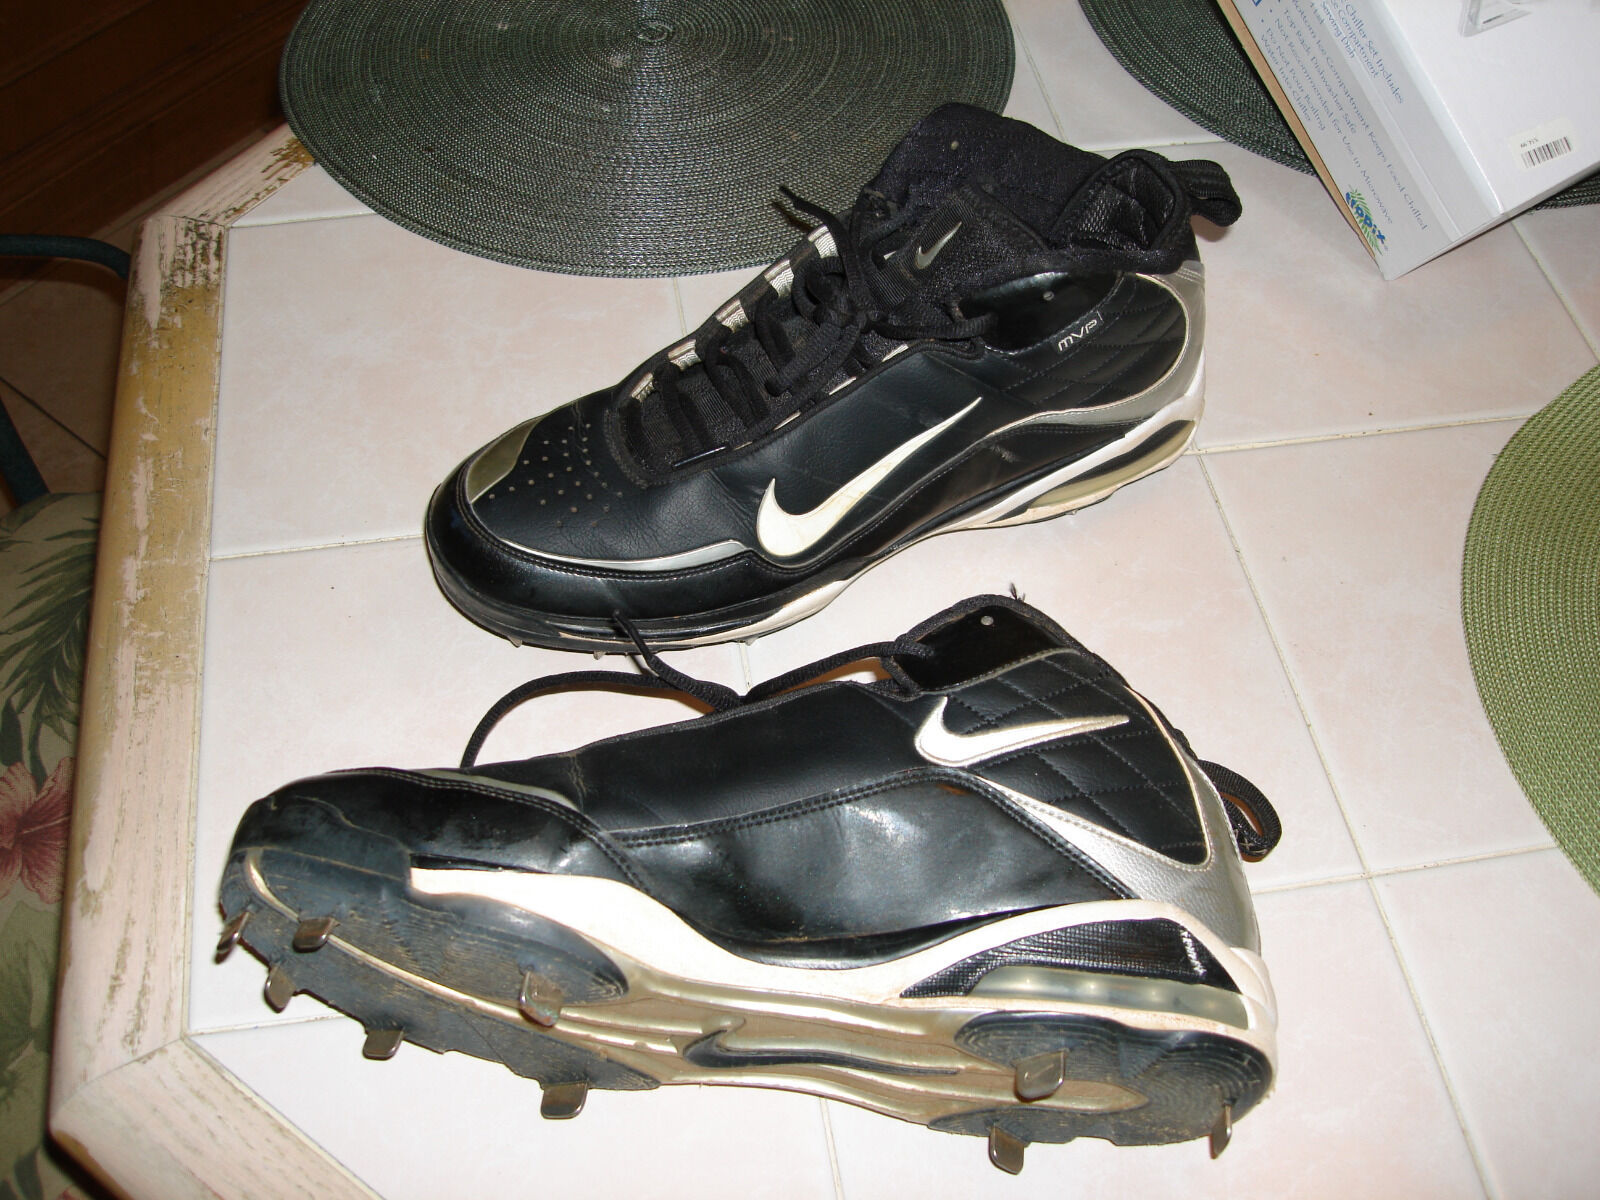 Men's Nike MVP Football Cleats Shoes used Comfortable